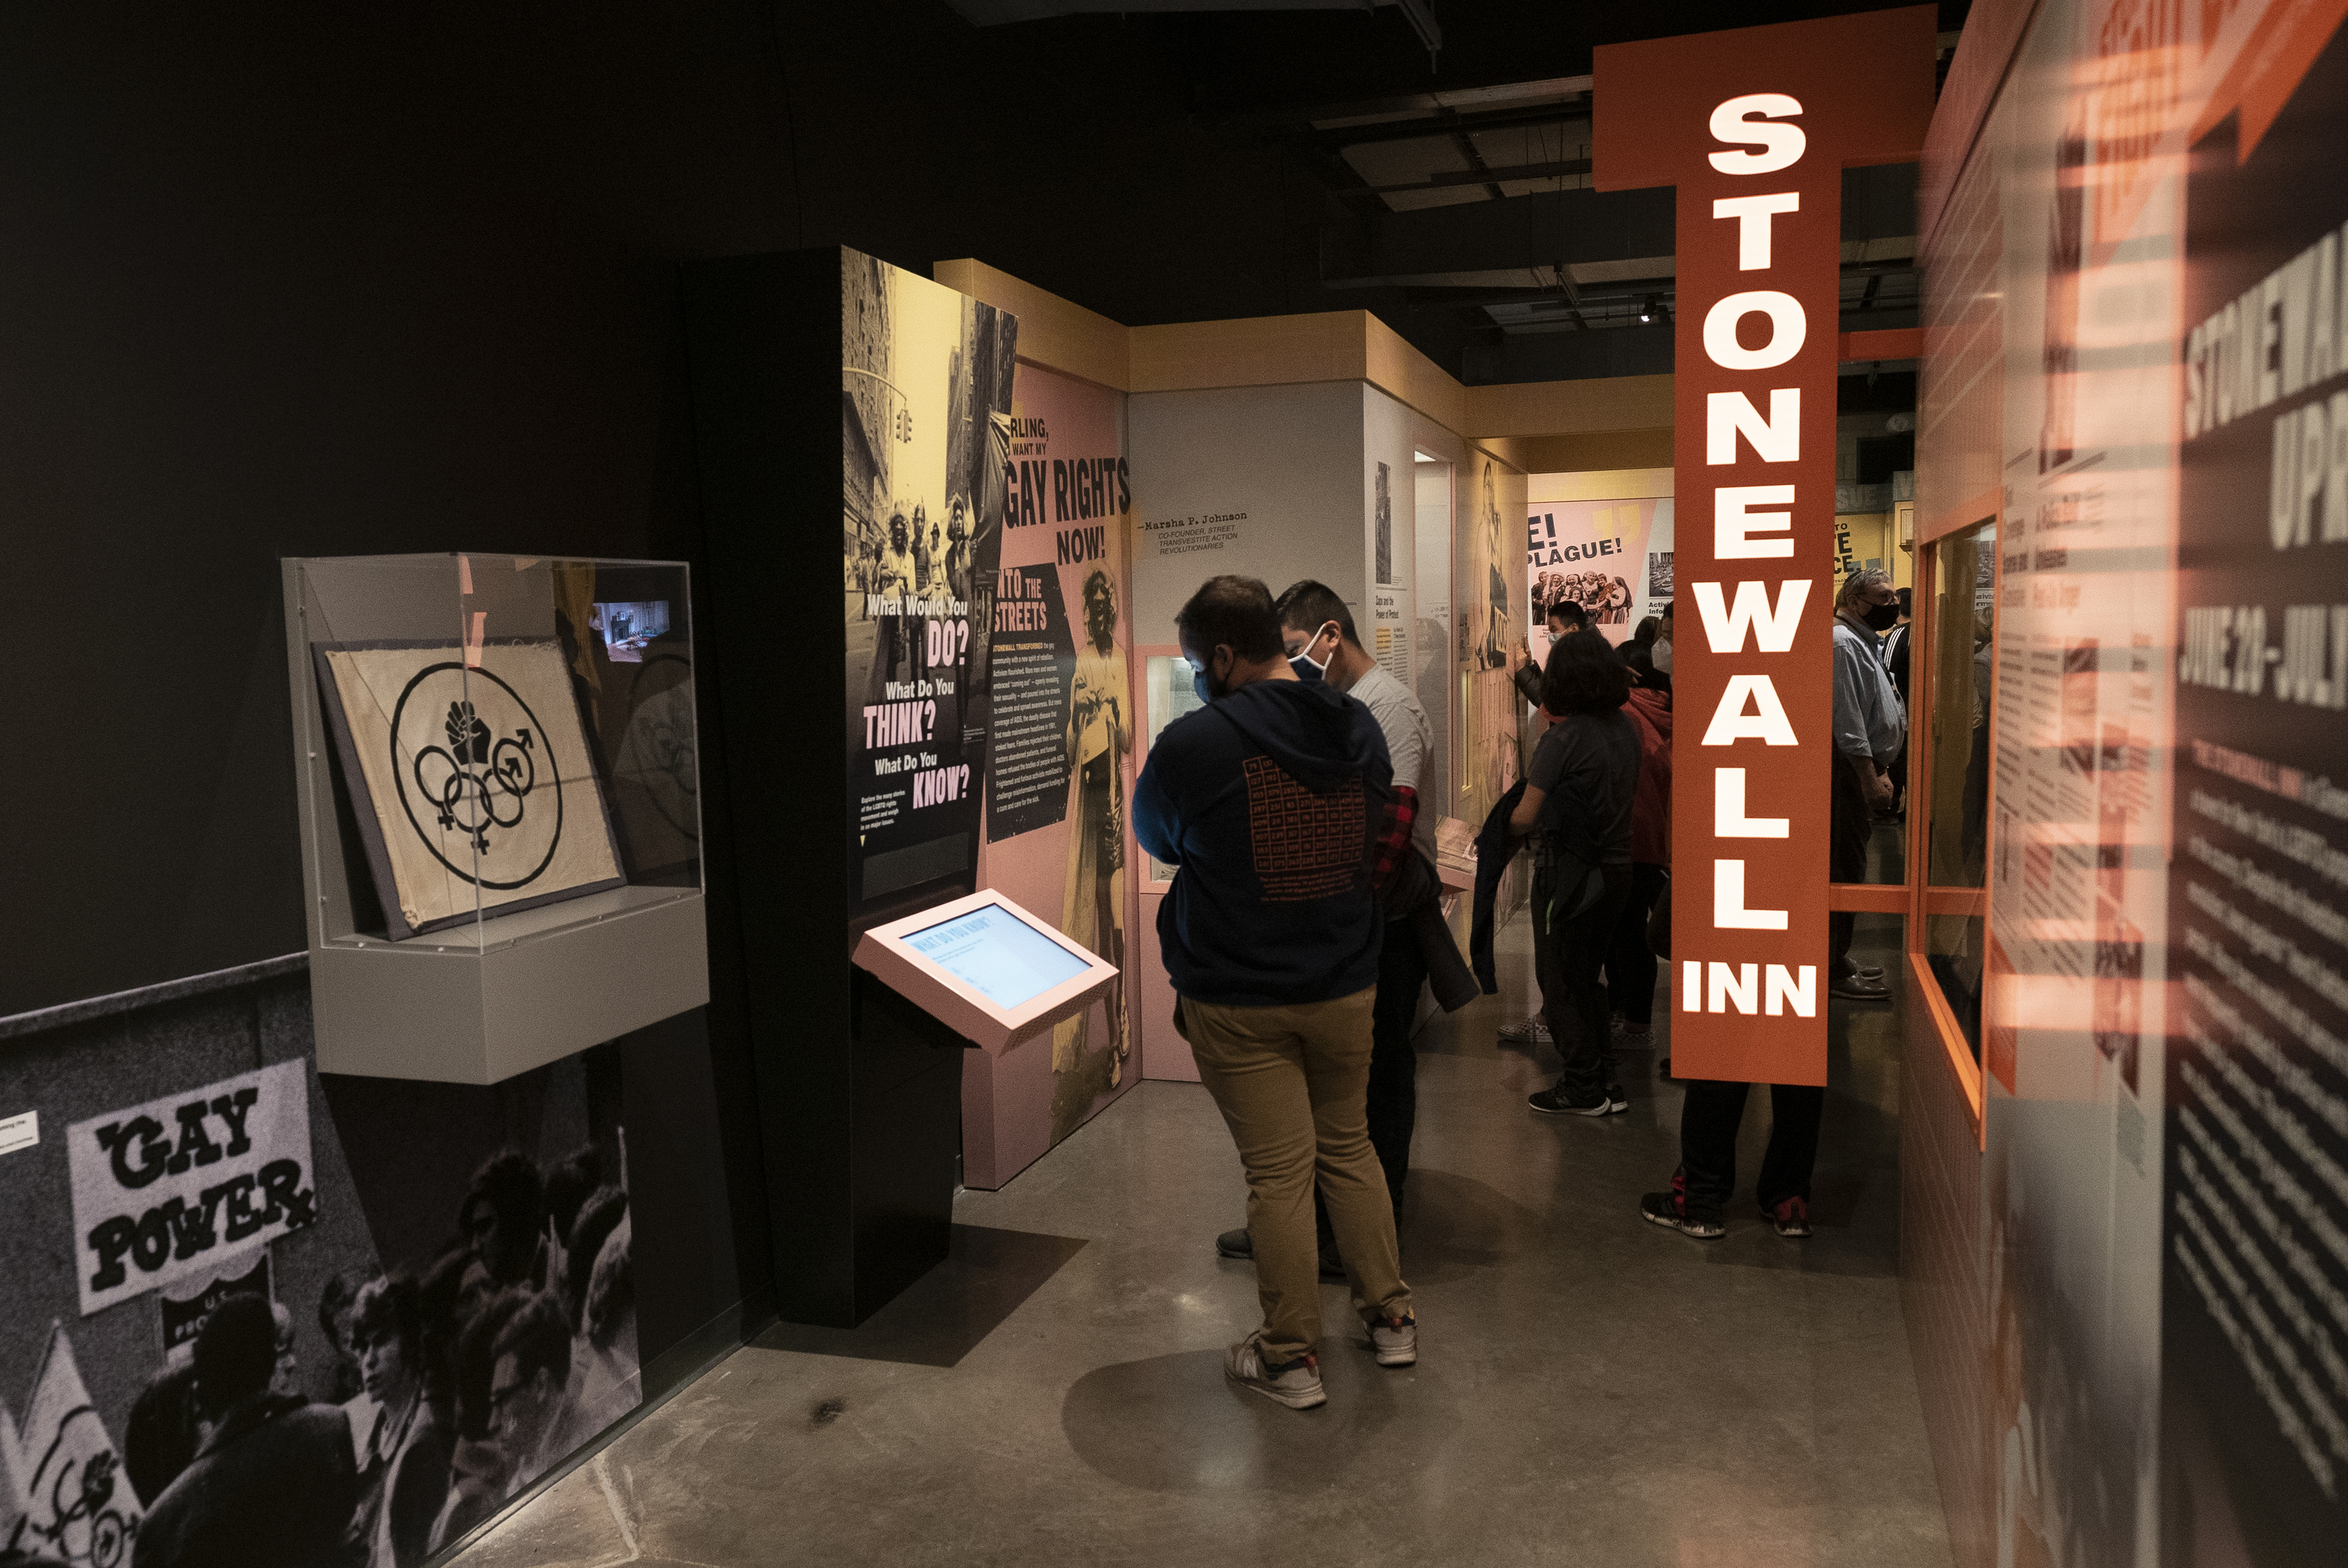 A new exhibit features historic images and artifacts of the LGBTQ+ rights movement.